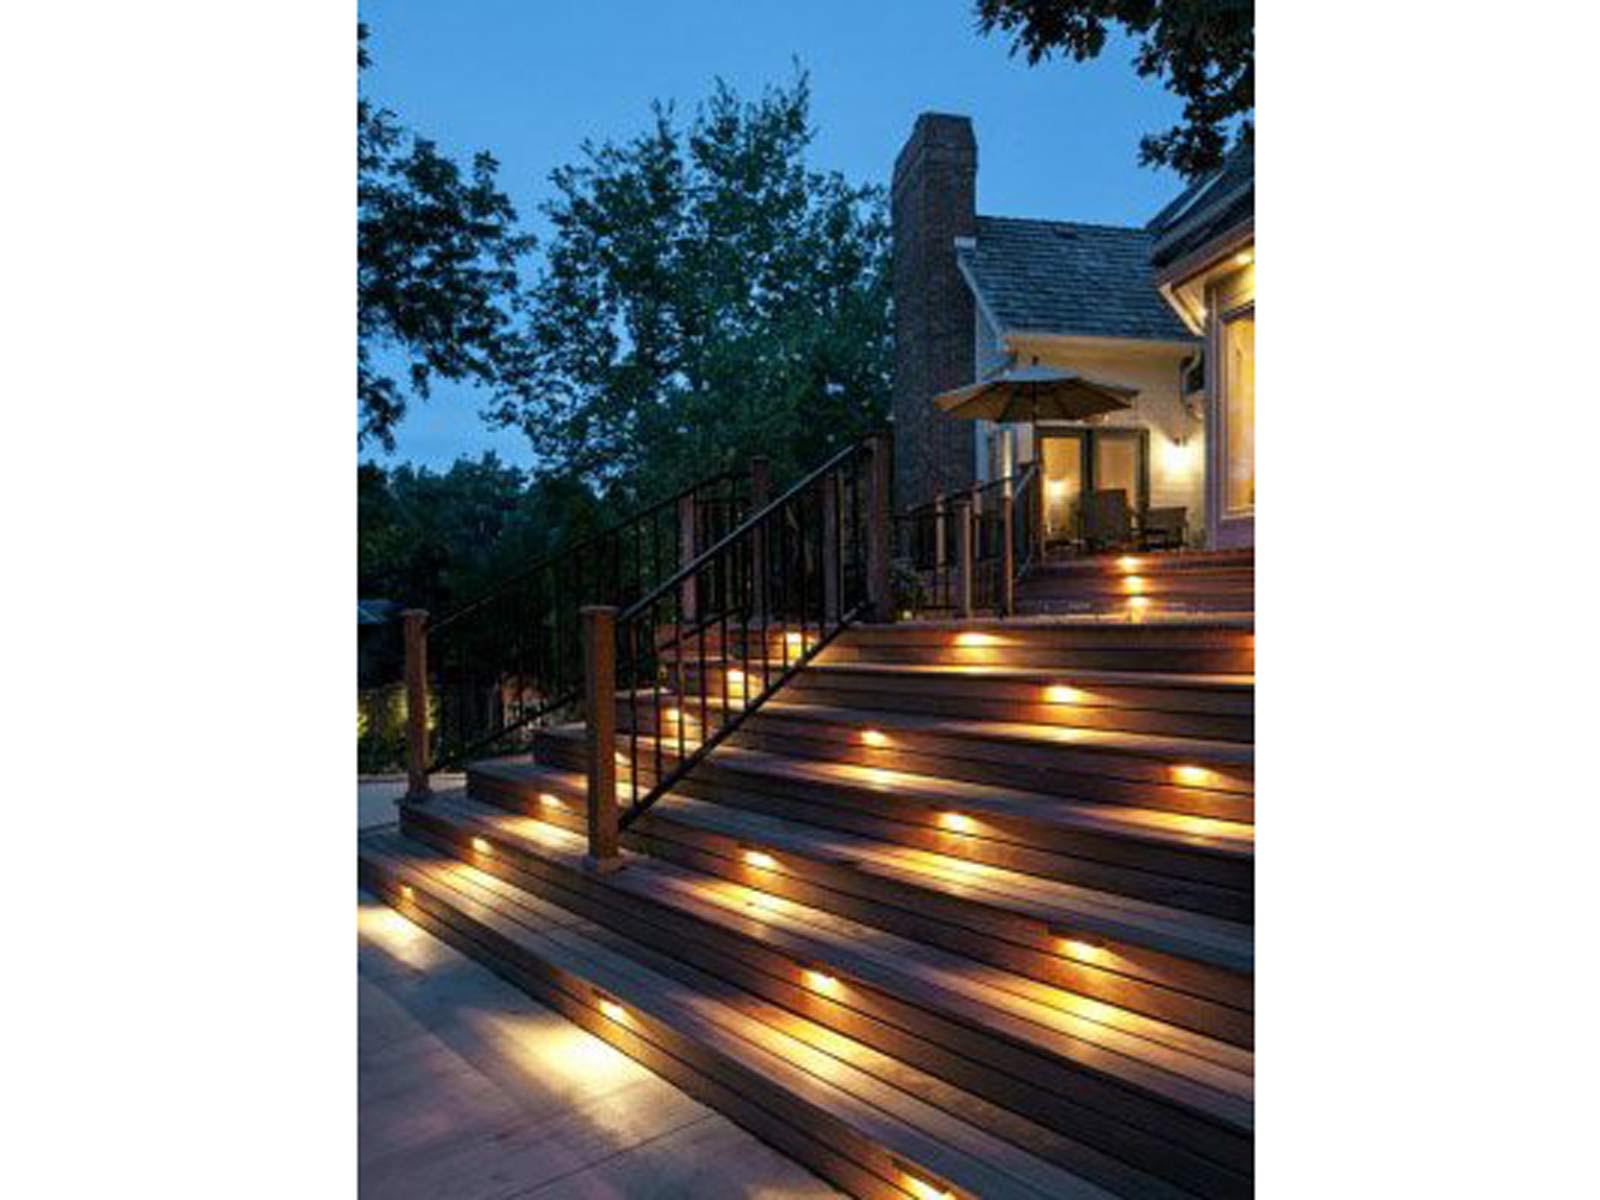 size volt lighting small best inspirational landscape wash line wall valor low voltage outdoor iso of round kits new exterior recessed full led soffits in unique